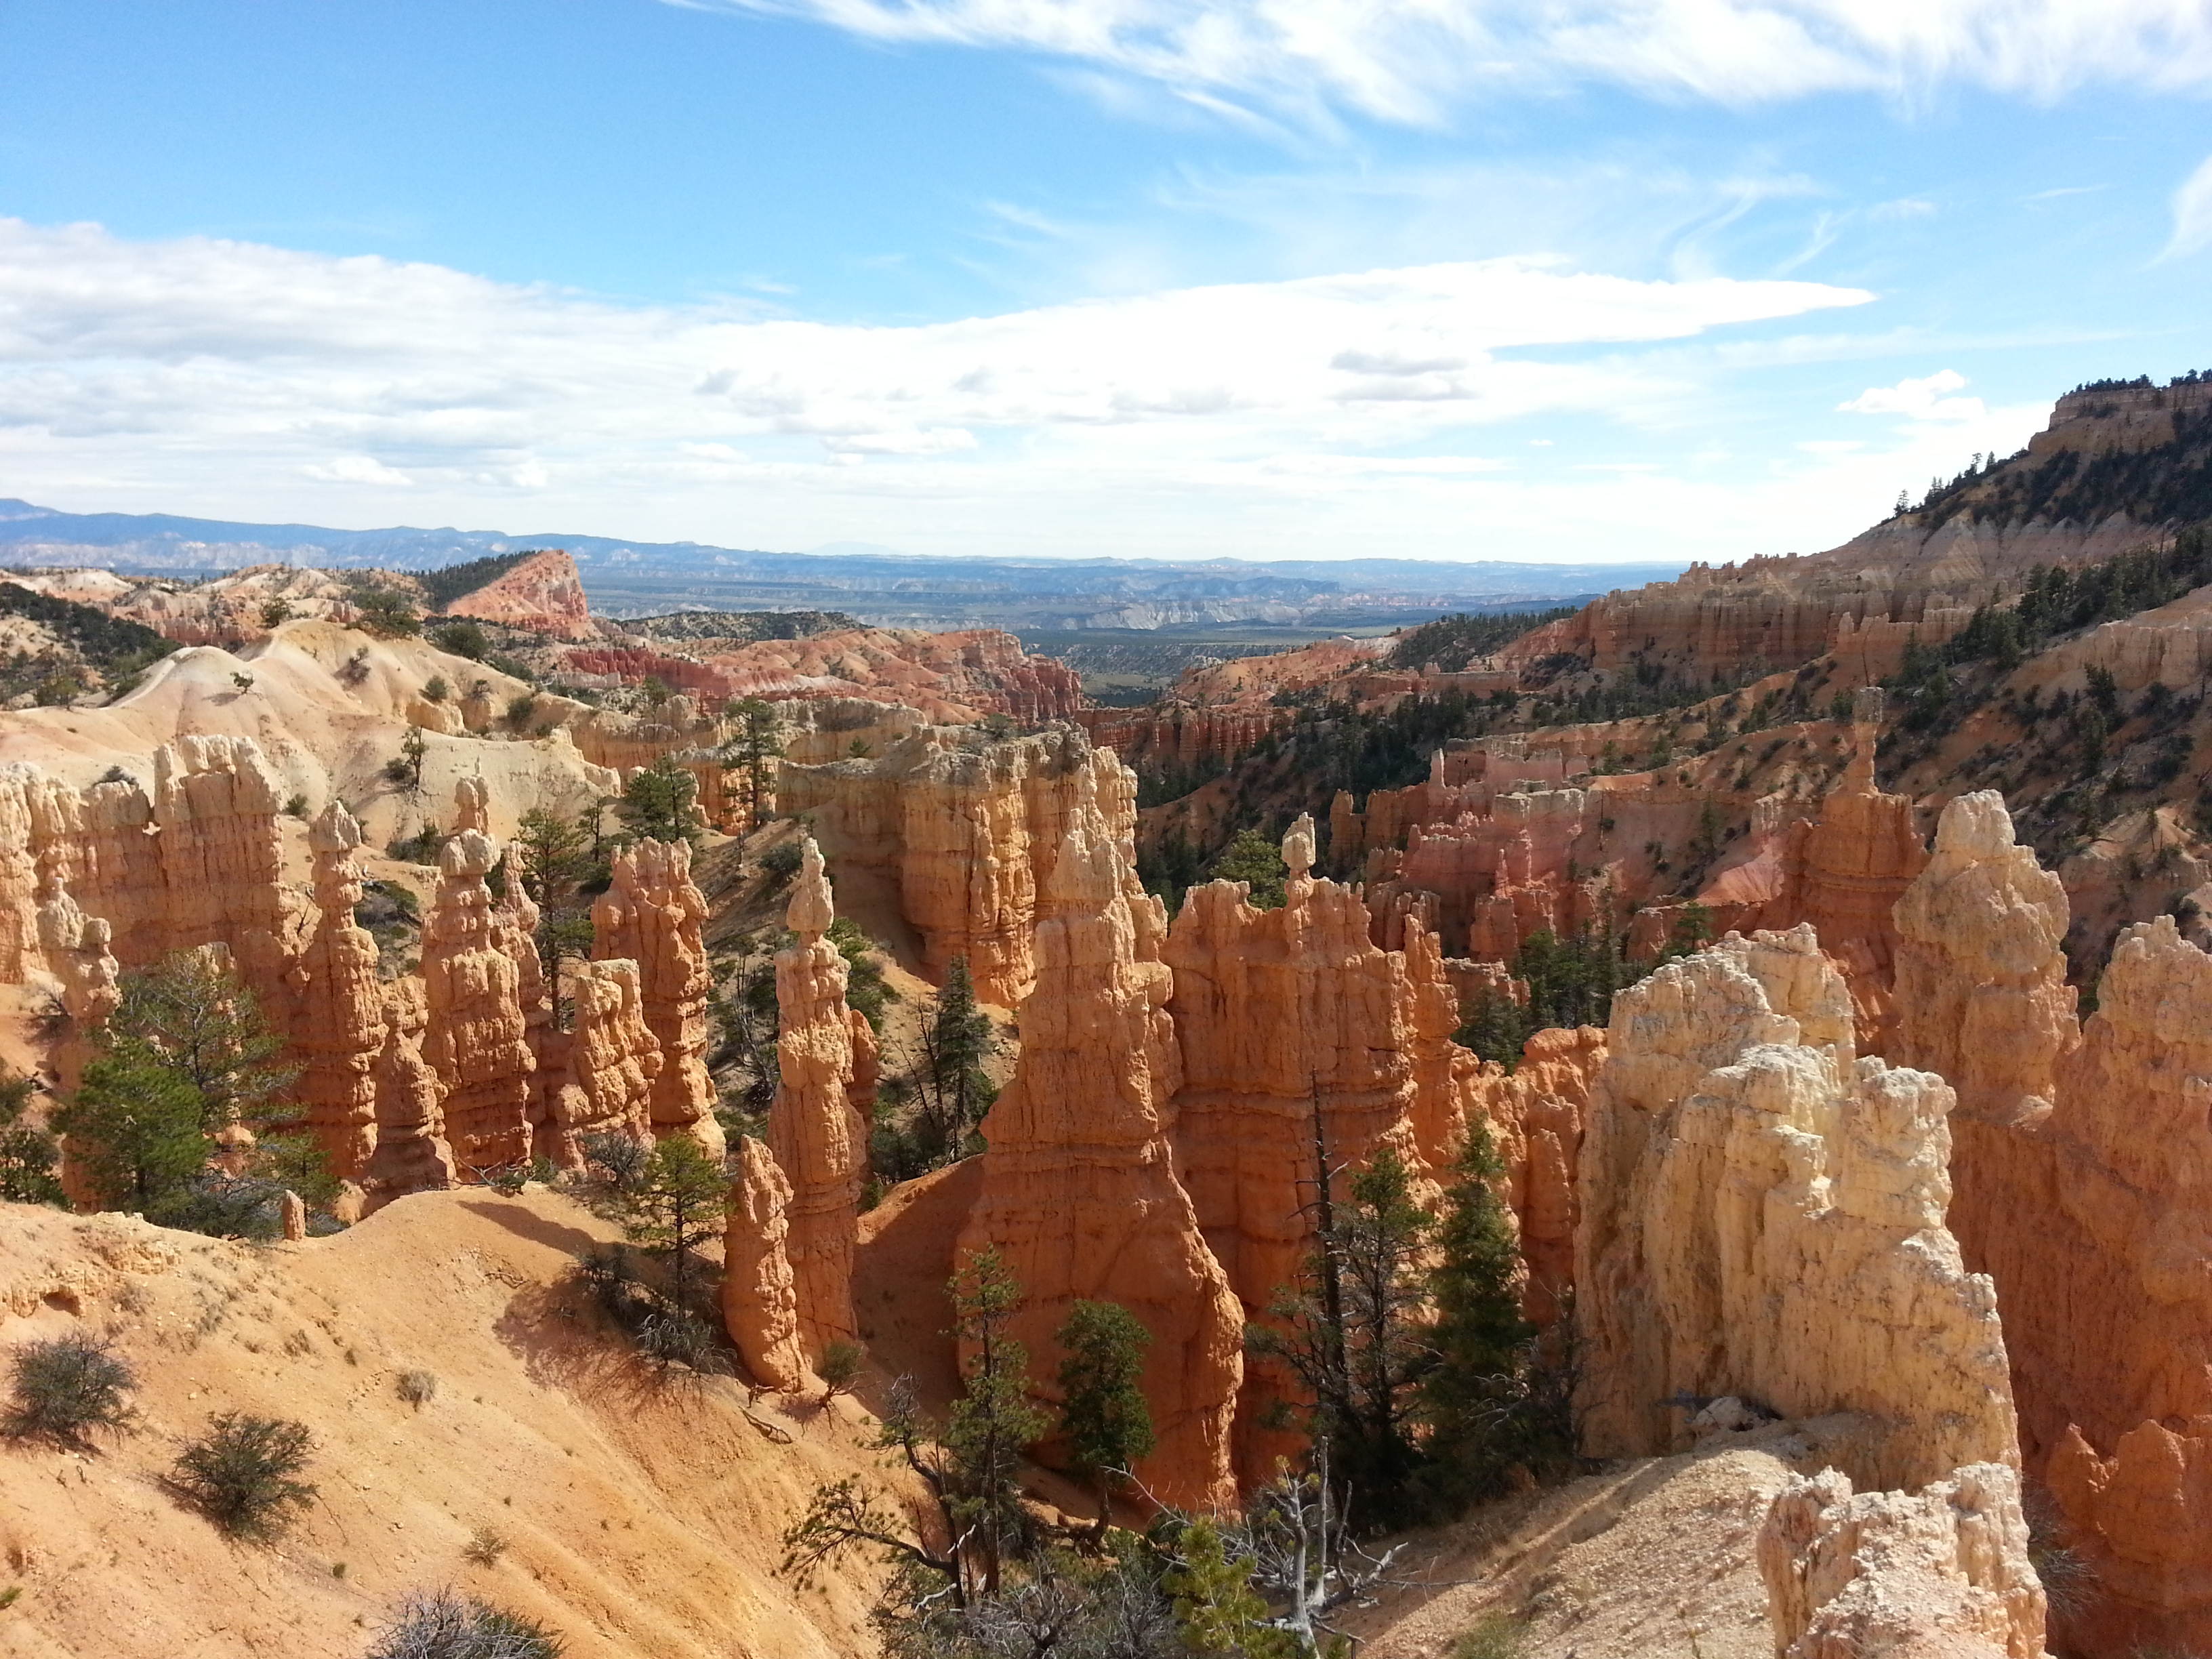 Chad Crotty - Bryce Canyon, UT